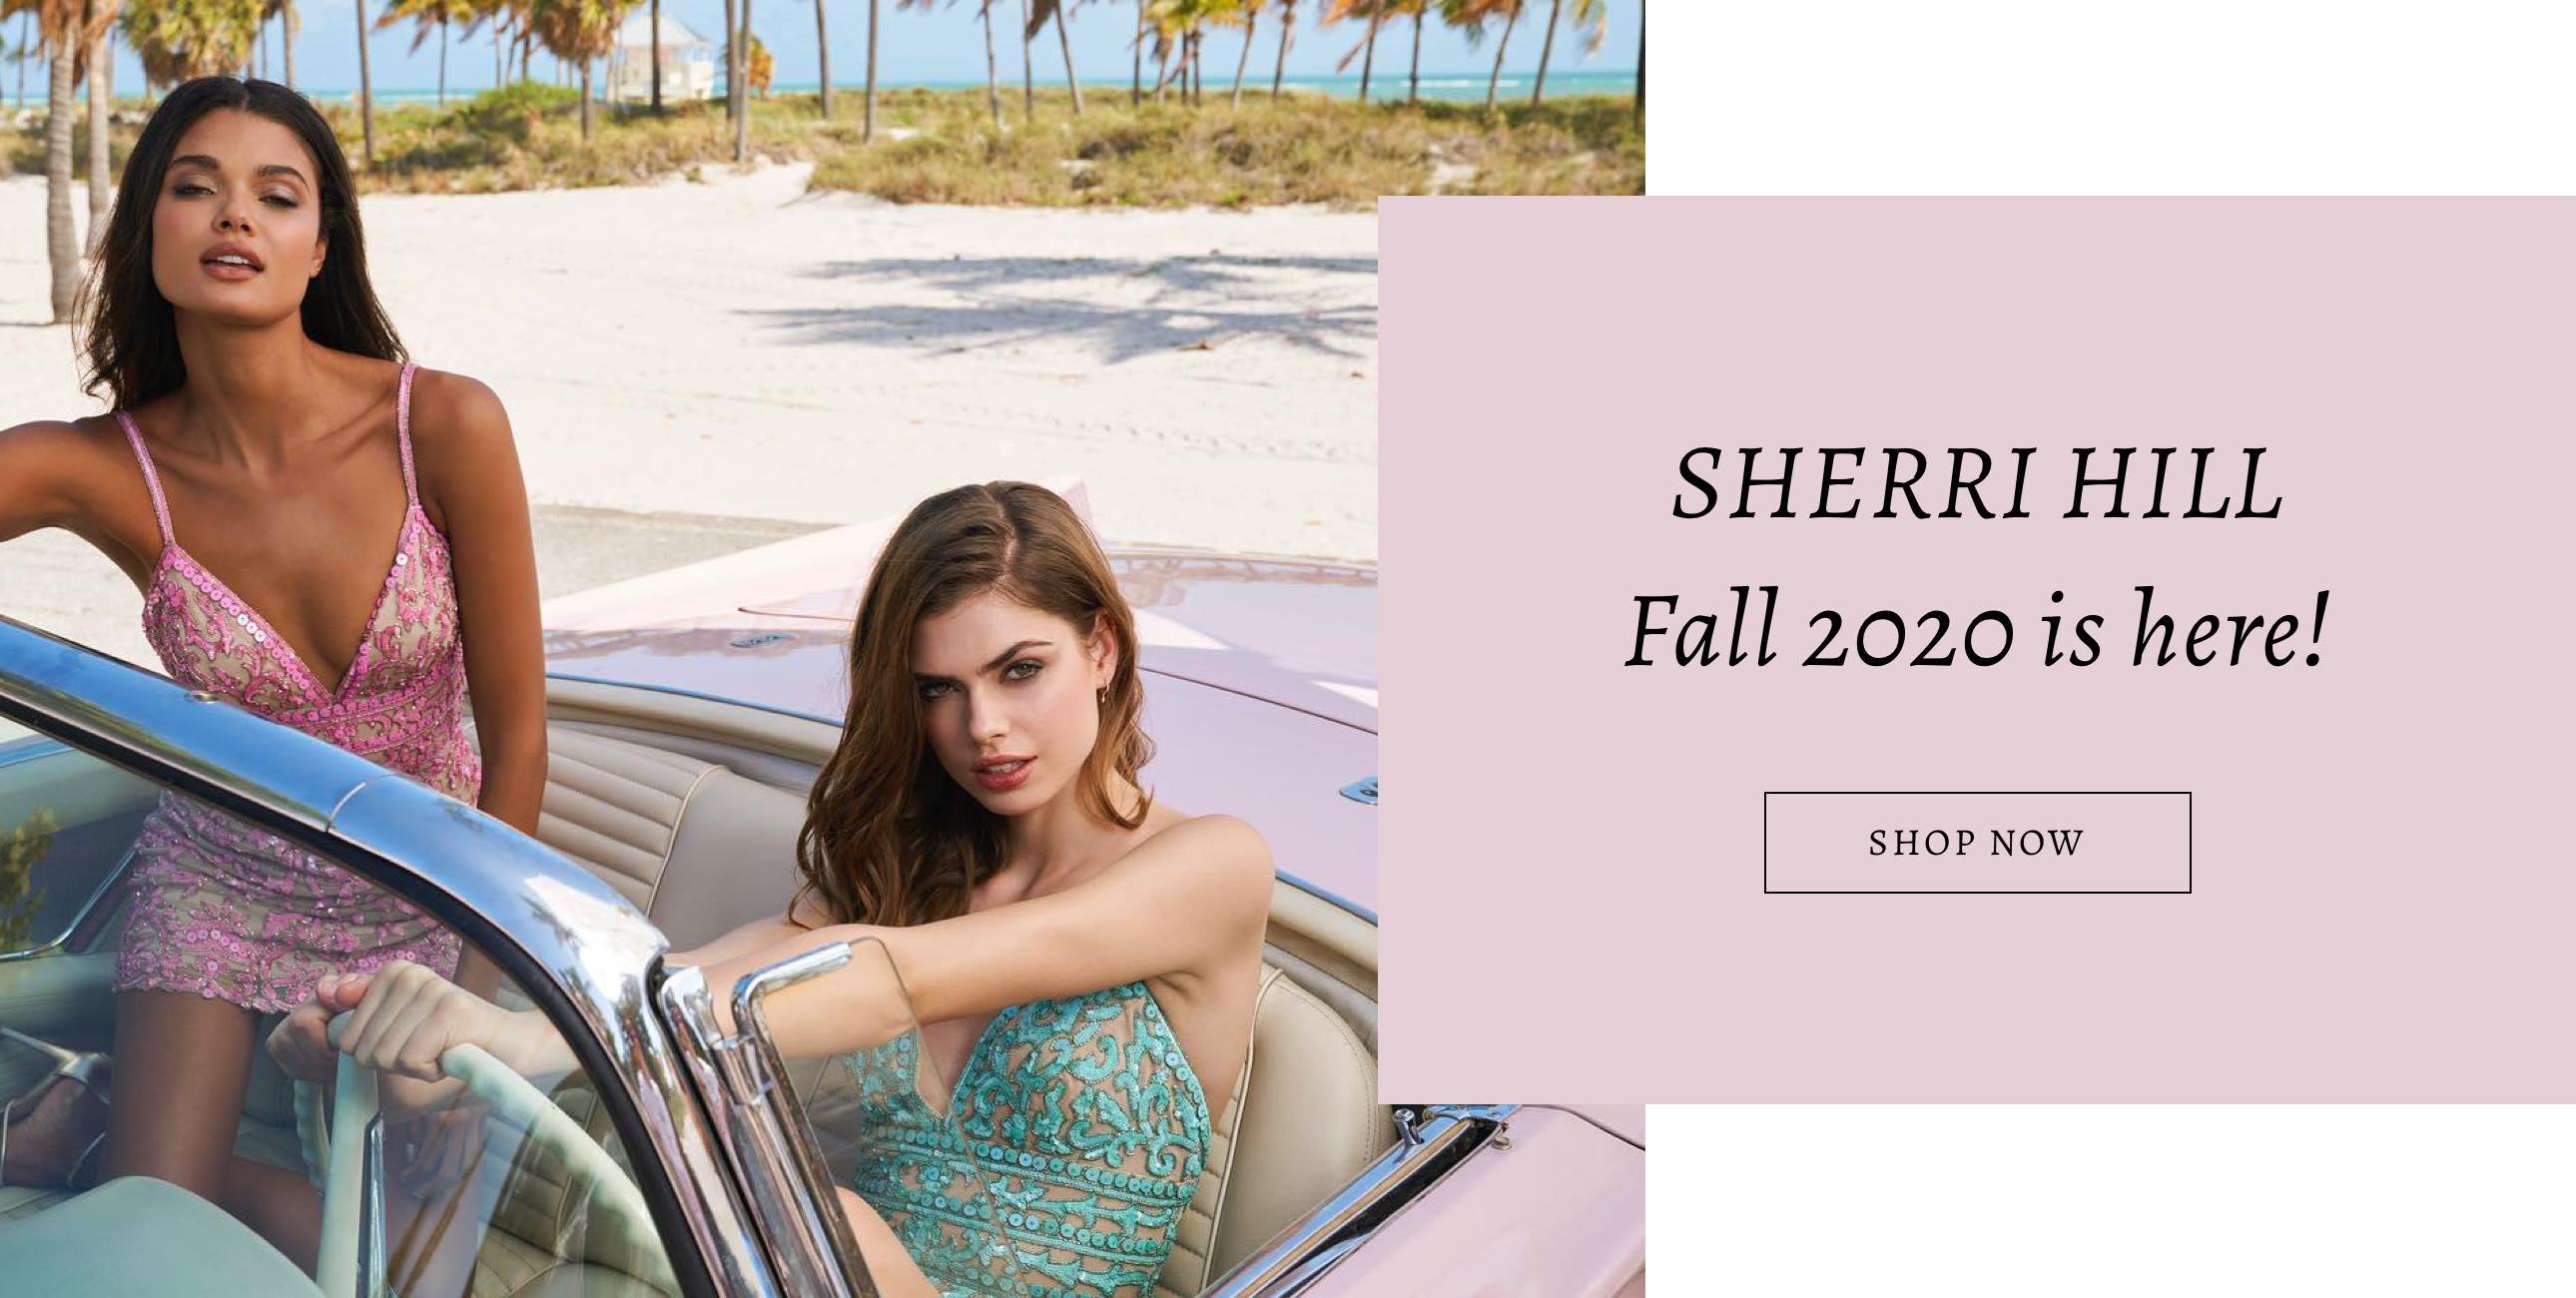 Two models in a car wearing Sherri Hill hoco dresses displayed on a banner for Cecile's Boutique